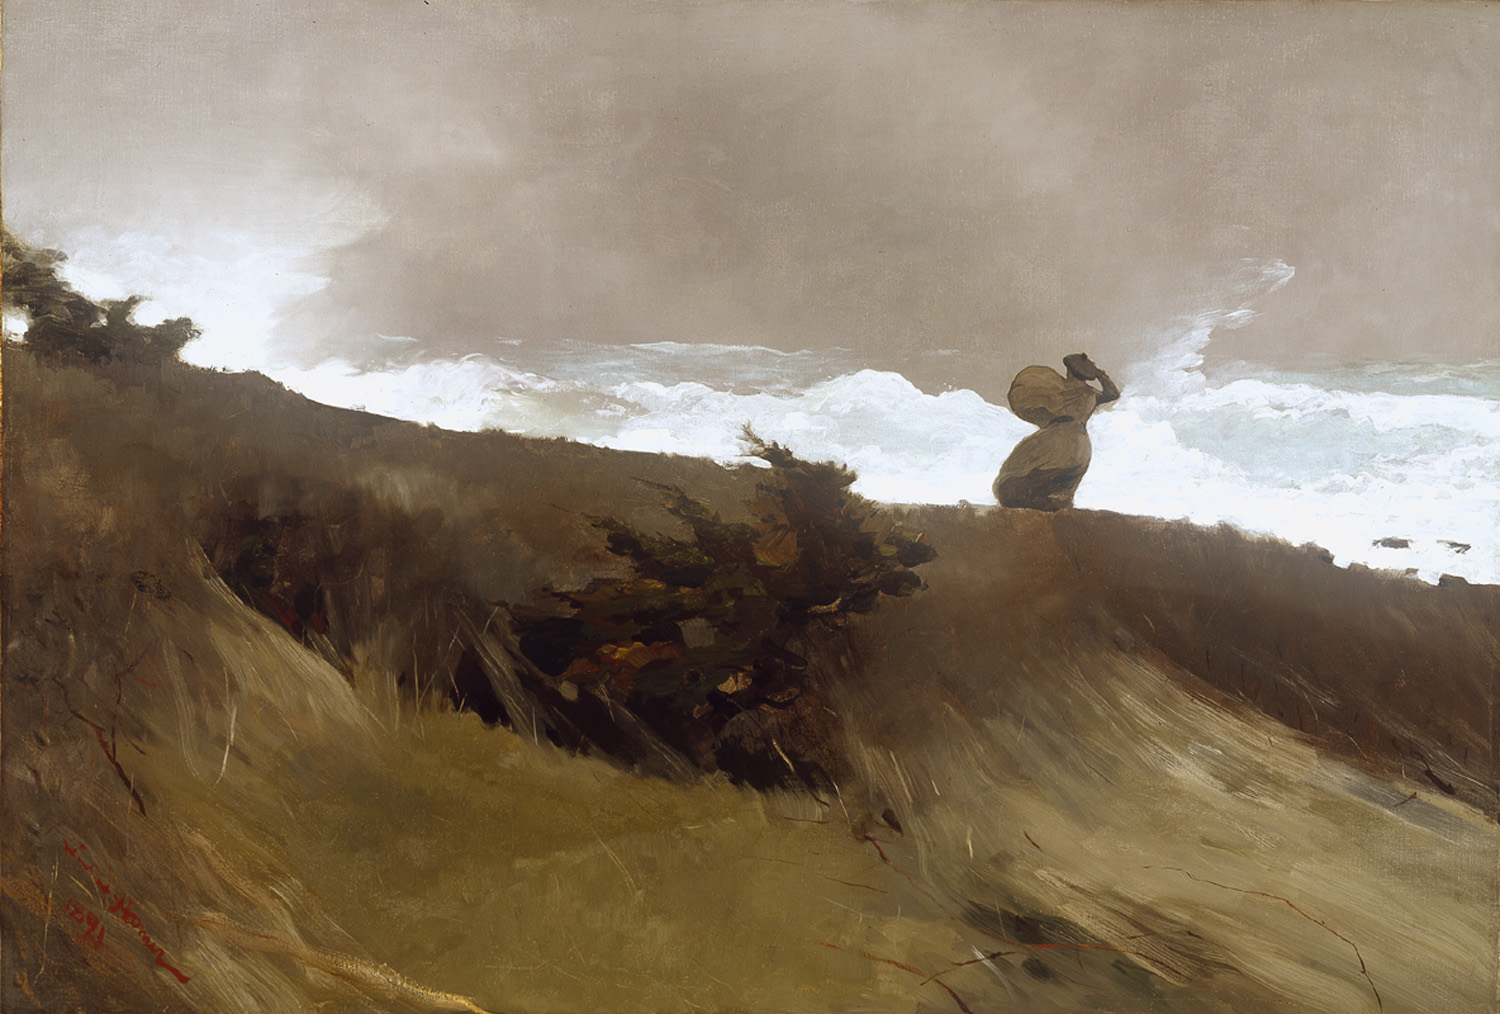 https://i0.wp.com/upload.wikimedia.org/wikipedia/commons/f/f7/WinslowHomer-West_Wind_1891.jpg